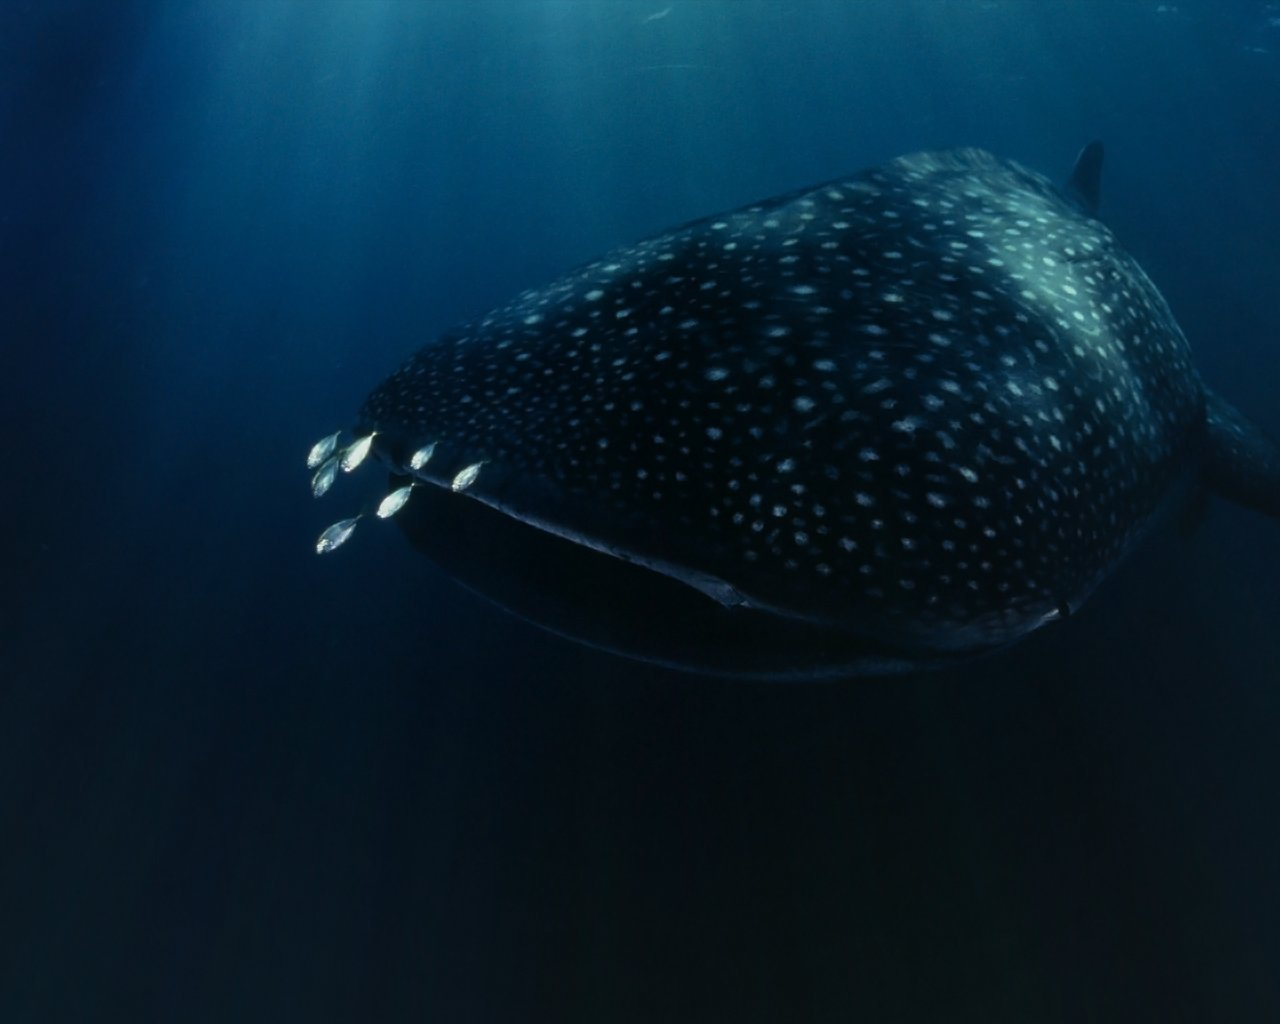 Download hd 1280x1024 Whale Shark computer wallpaper ID:134828 for free